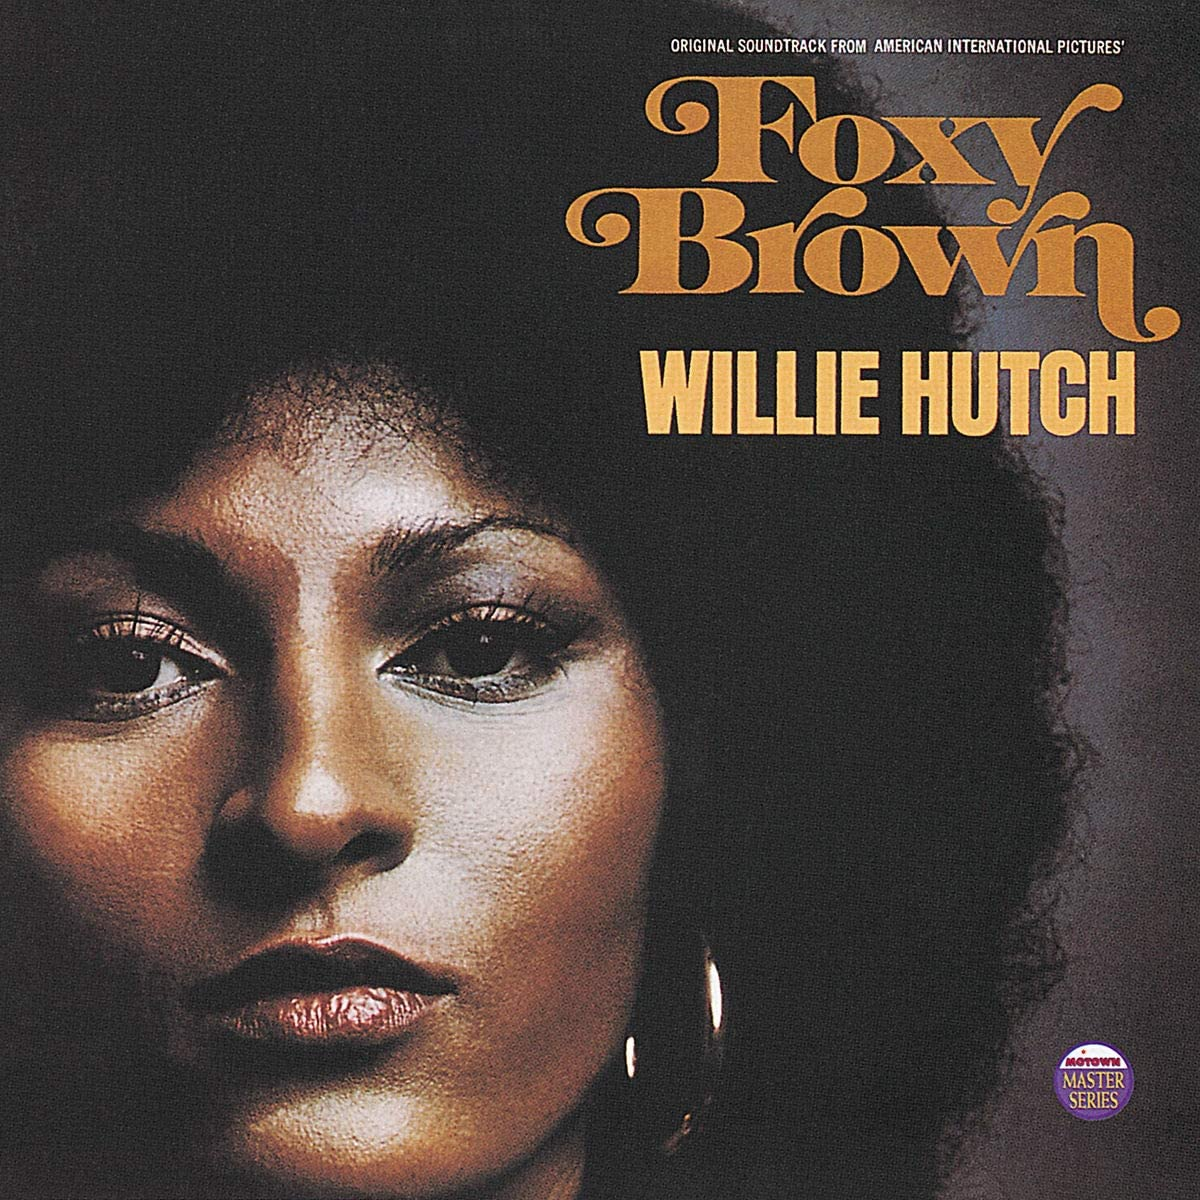 Soundtrack/Foxy Brown - Willie Hutch [LP]